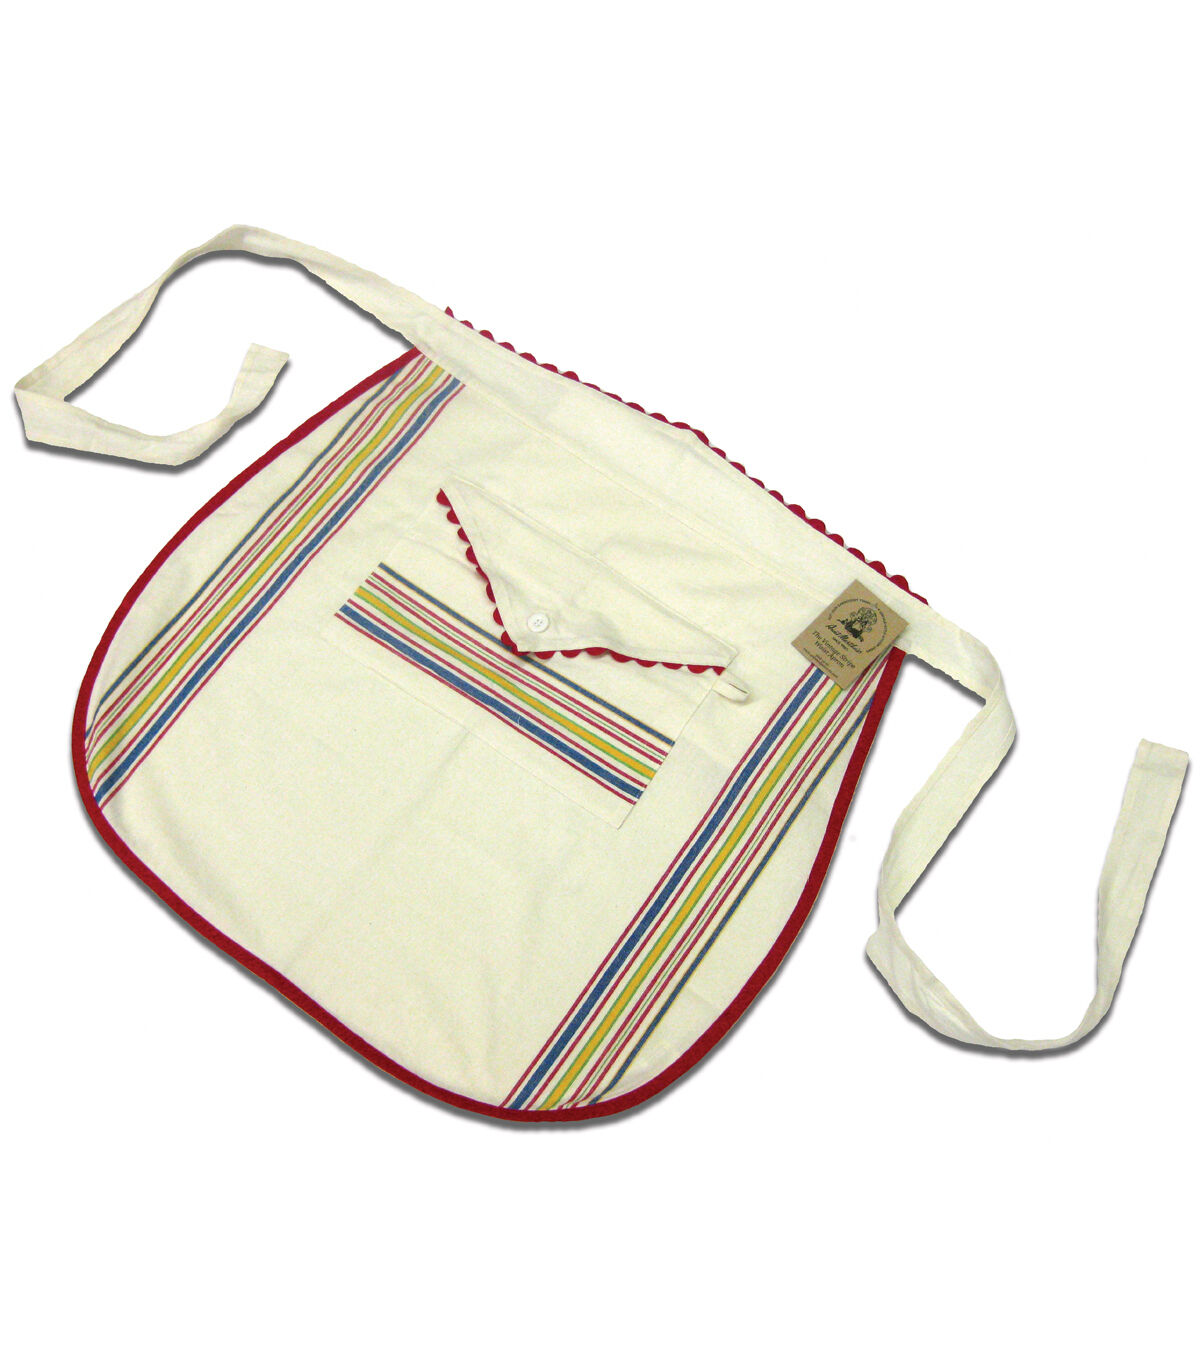 Vintage Aprons, Retro Aprons, Old Fashioned Aprons & Patterns Aunt Martha Vintage Stripe Waist Apron - Multi Stripe - Yarn  Needle Arts - Cross Stitch - Stamped Cross Stitch at JOANN $13.99 AT vintagedancer.com